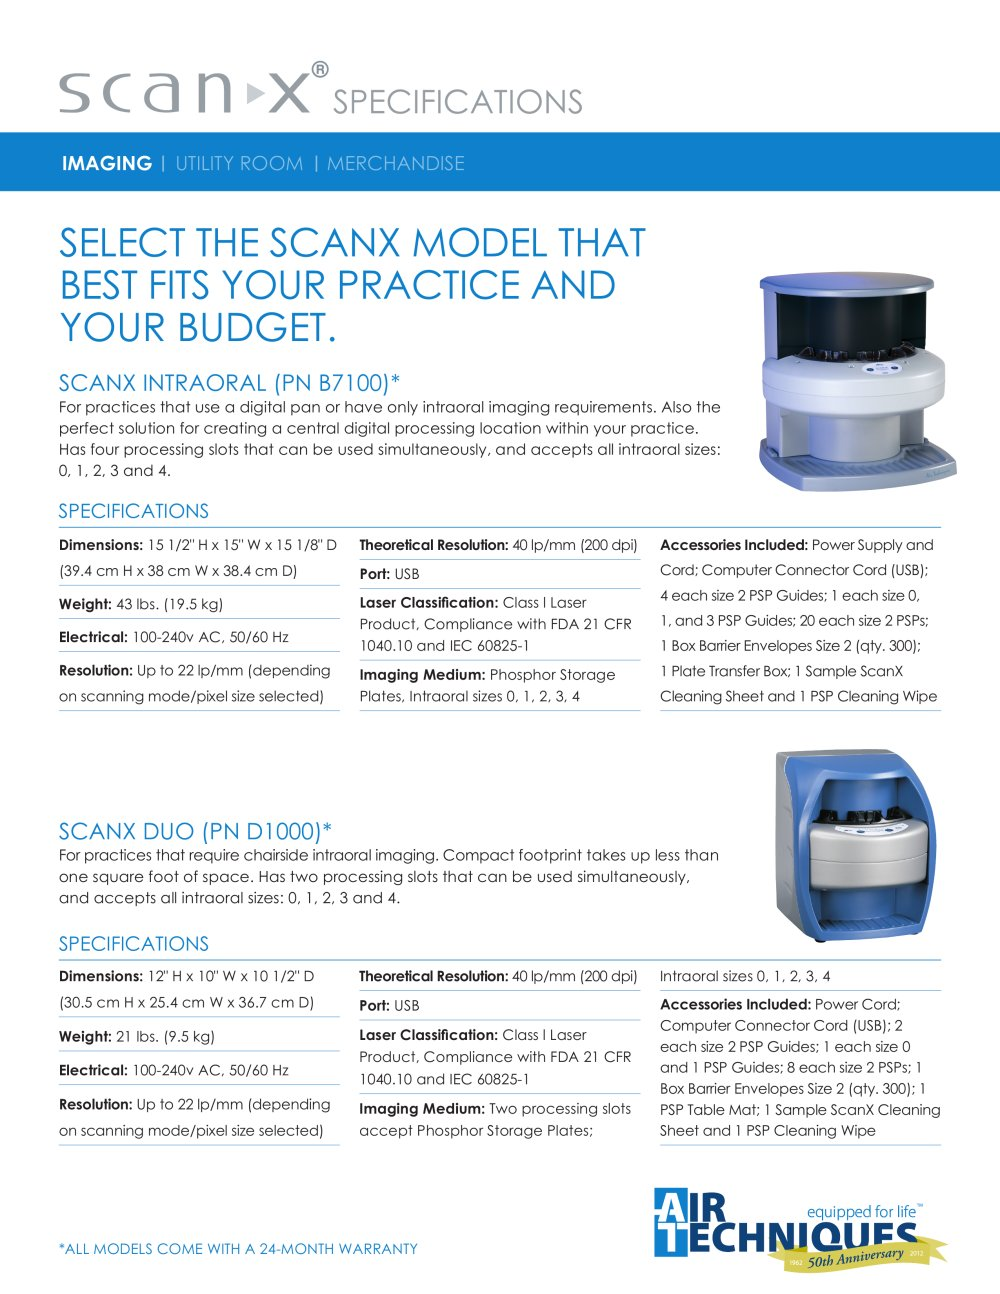 ScanX Specifications Sell Sheet   1 / 2 Pages